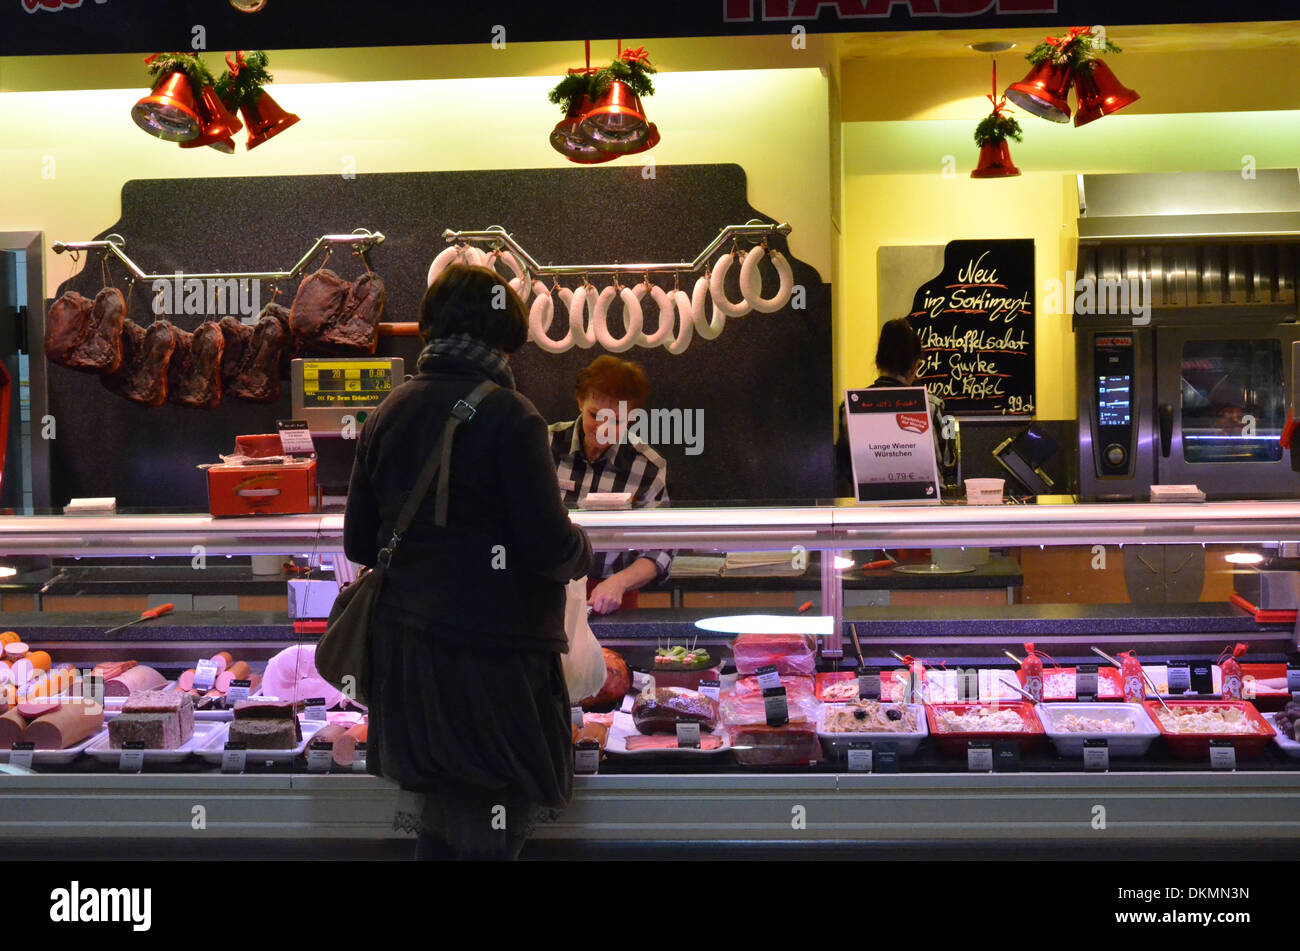 Berlin, Supermarket at Christmastime, shopping, sausages - Stock Image